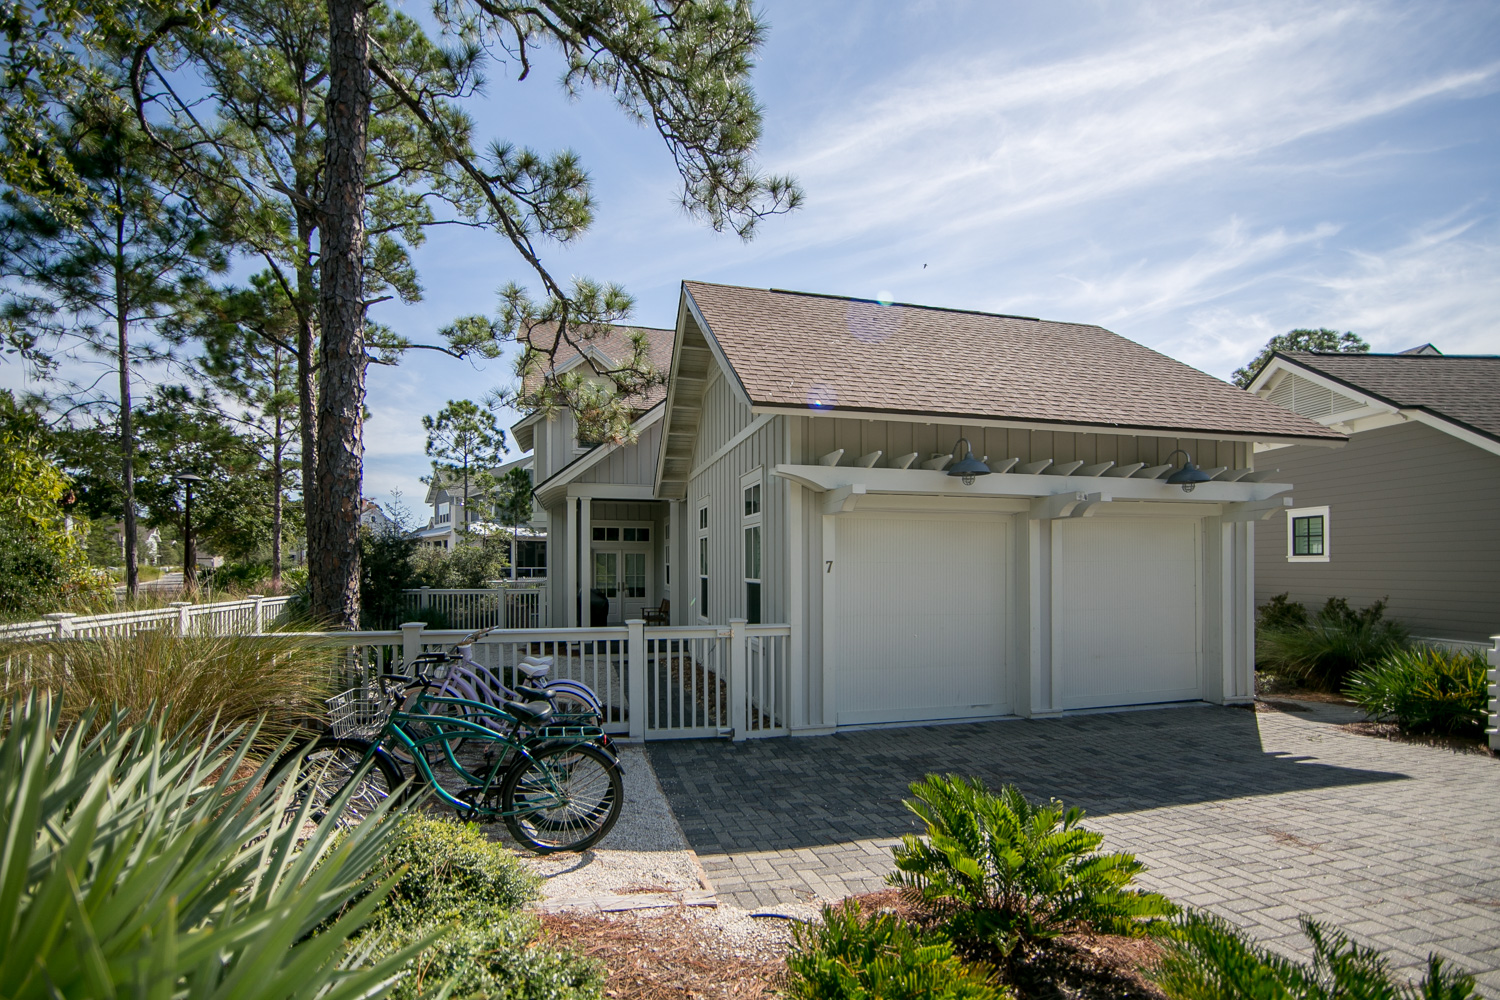 Driveway fits 2 cars plus there is use of the right side of the garage; it also has a convenient bike rack; front entrance area has a large gas grill and entryway to a mudroom next to the laundry room